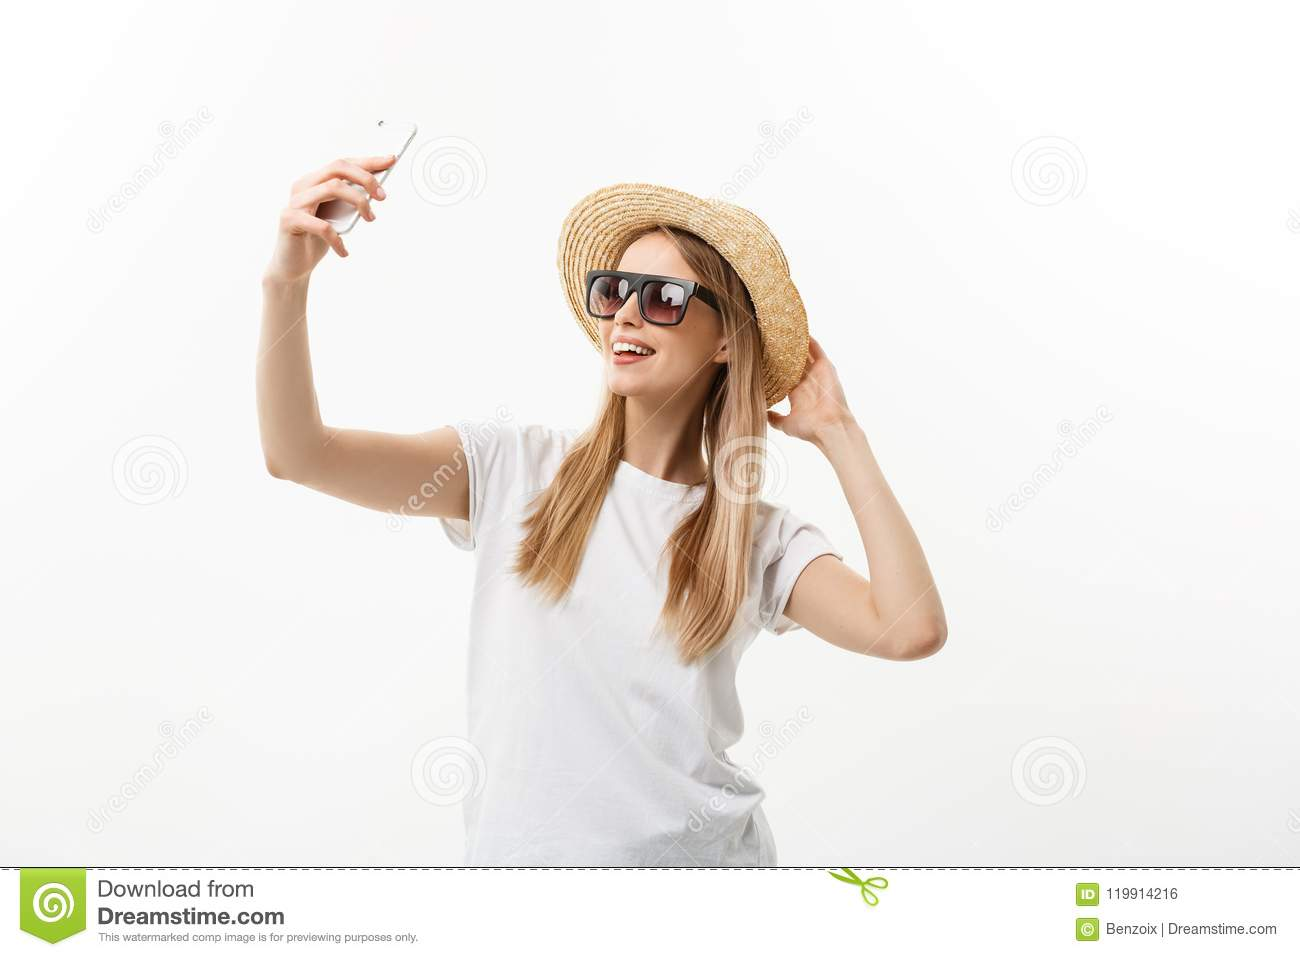 Fashion and Lifestyle Concept: pretty young woman wearing a hat, sunglasses takeing a photo of herself by mobile phone